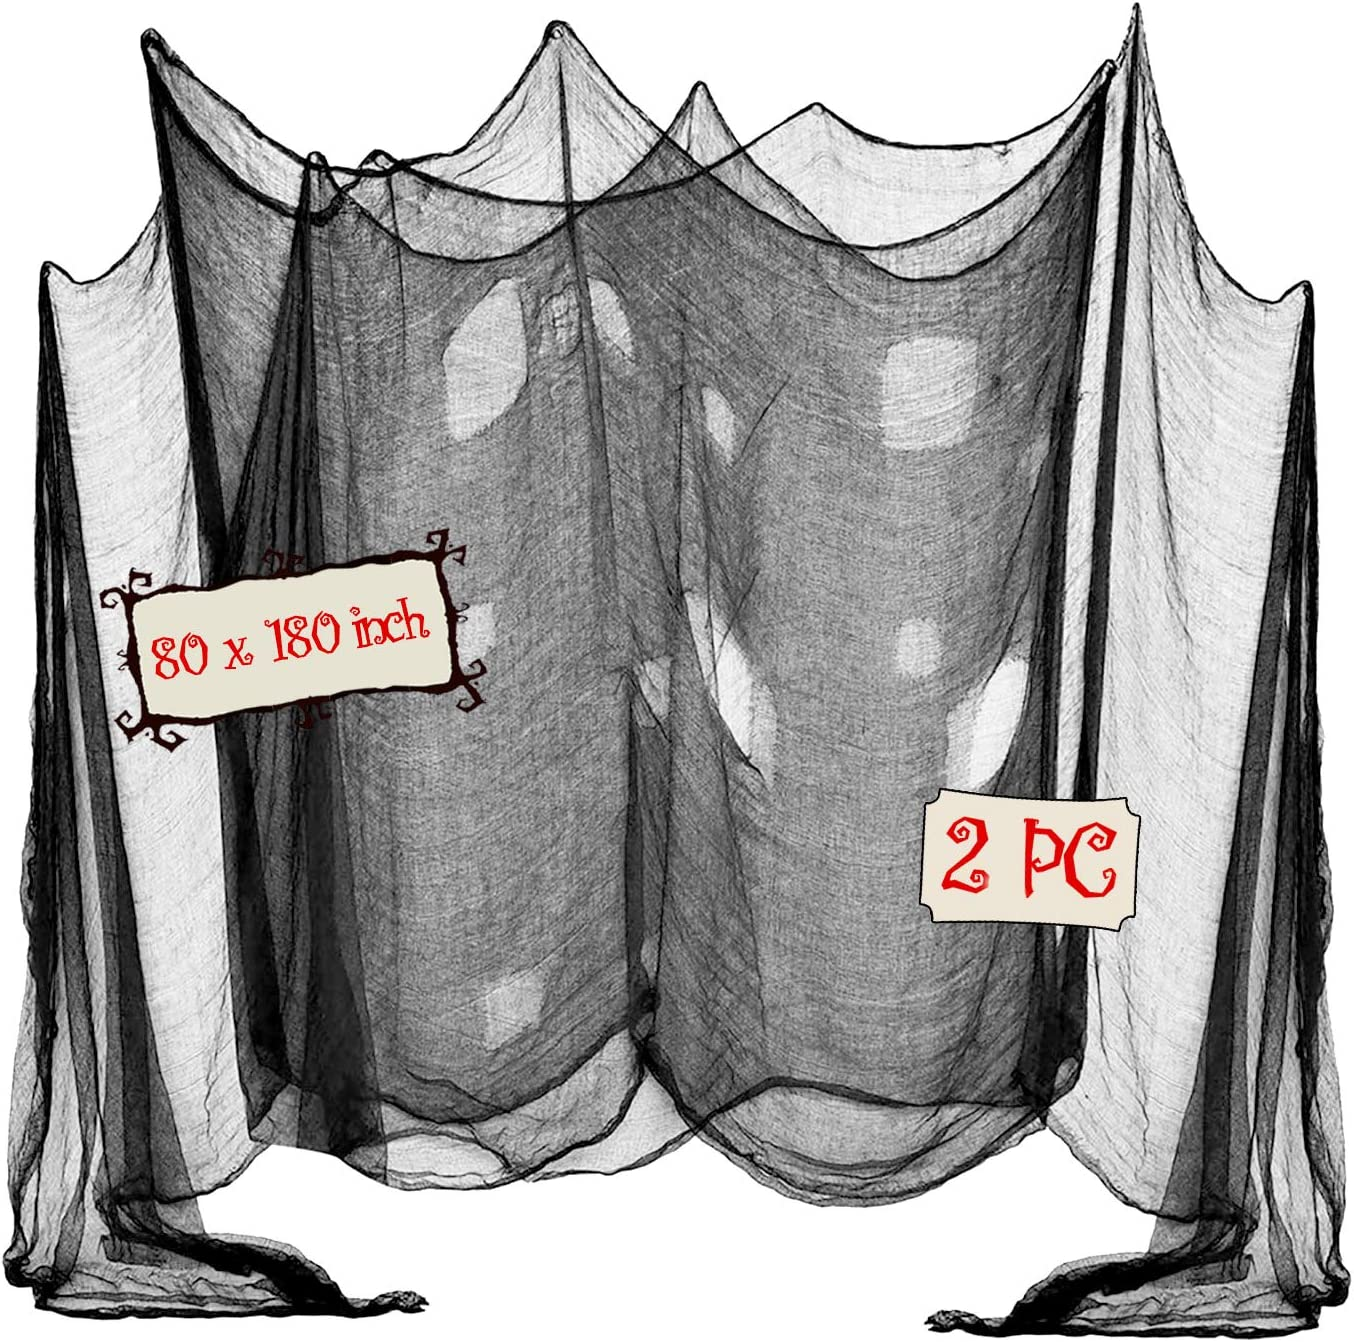 OZMI Halloween Creepy Cloth, Pack of 2 Scary Spooky Cloth Creepy Gauze, 80 x 180inch Freaky Loose Weave Creepy Cloth, Decorations for Haunted Houses Props Halloween Wall Outdoor Indoor Decor (Black)